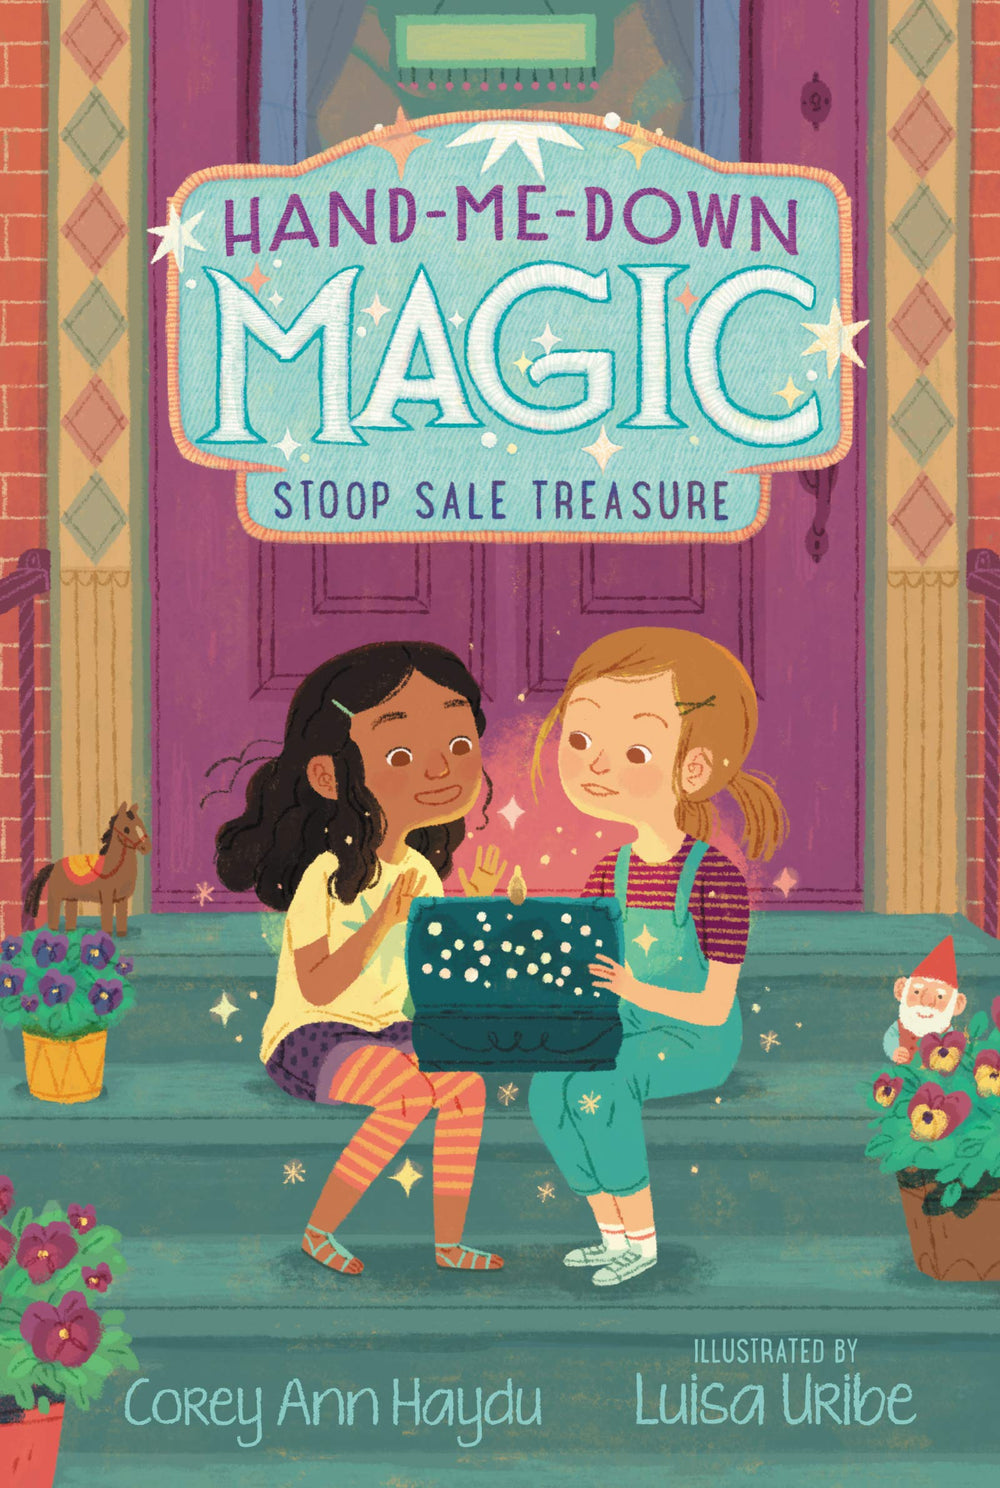 Stoop Sale Treasure (Hand-Me-Down Magic #1) by Corey Ann Haydu